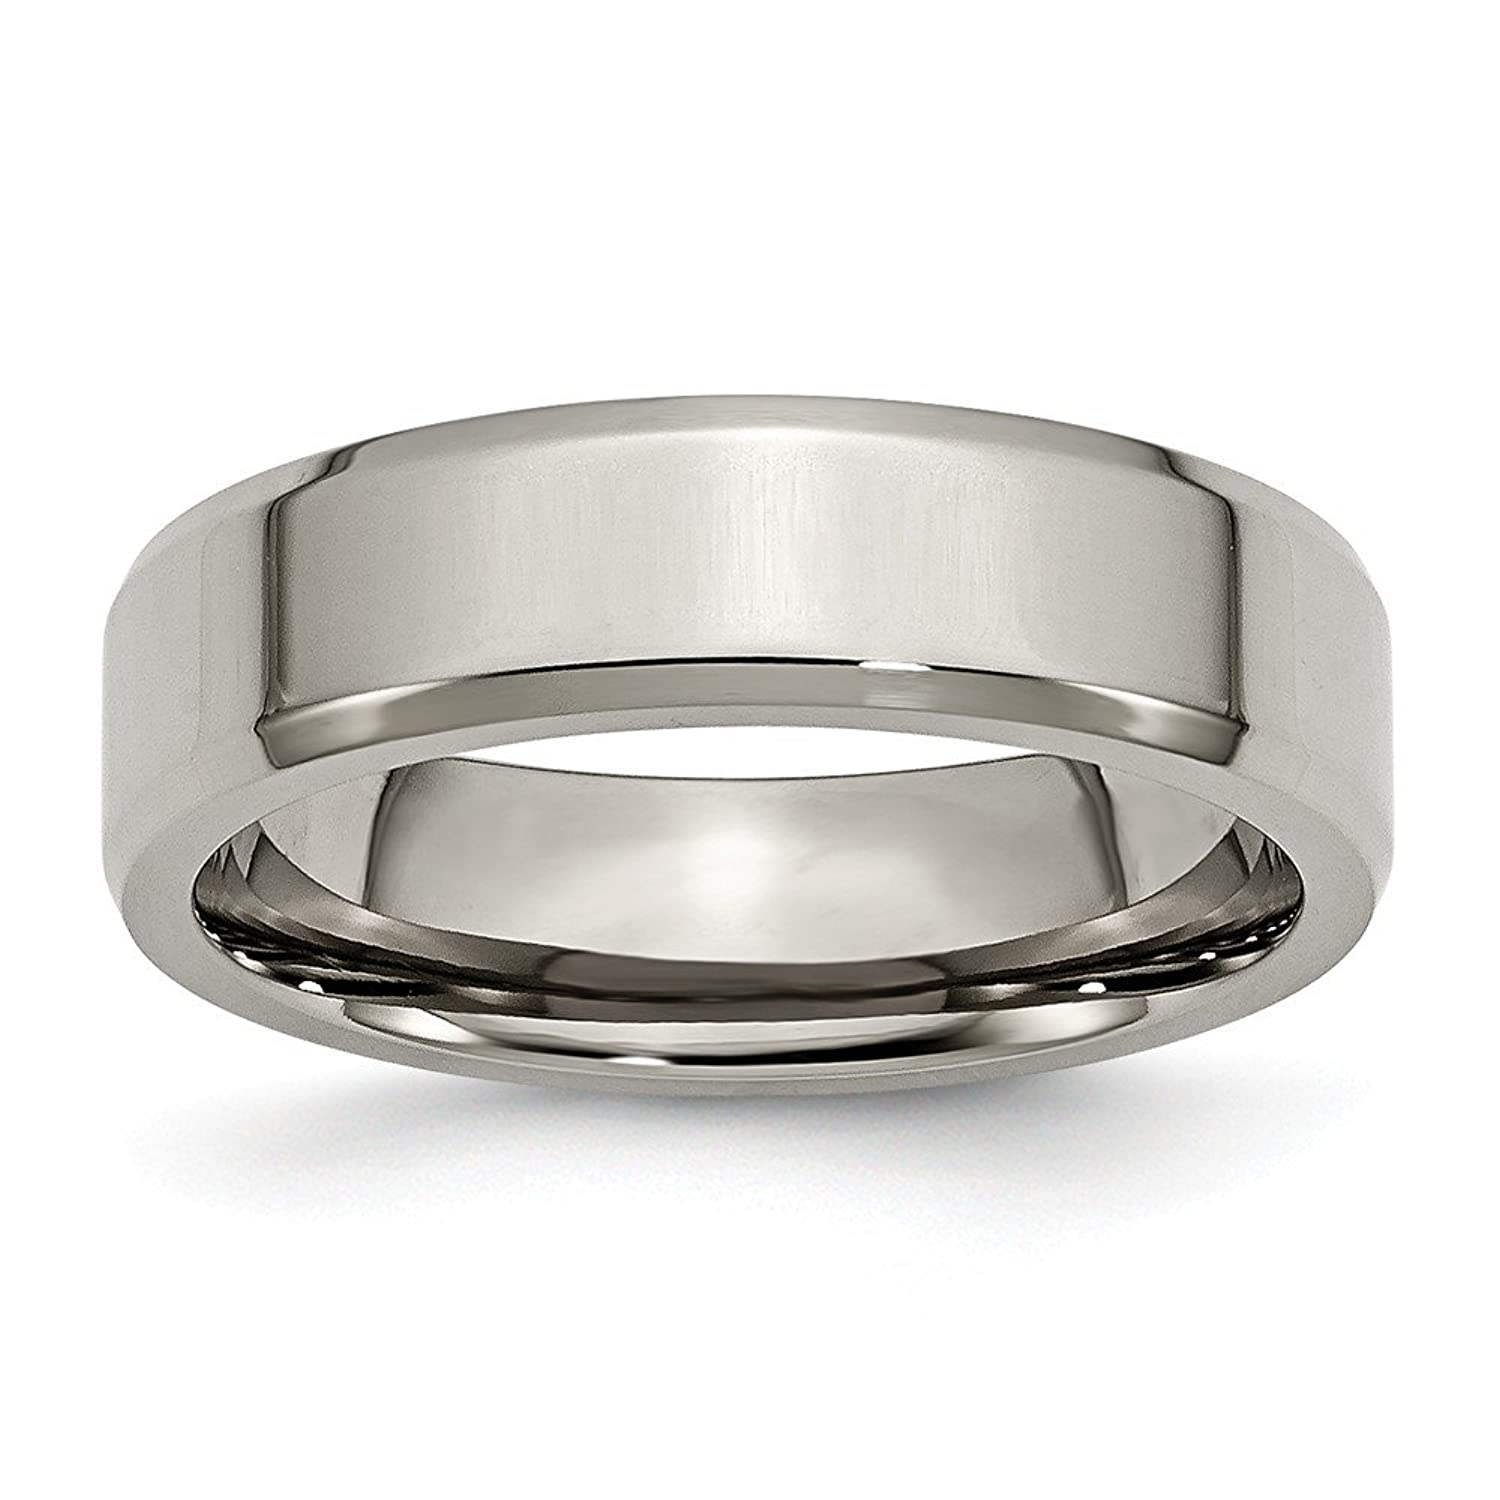 Titanium Beveled Edge 6mm Polished Band, Size 10